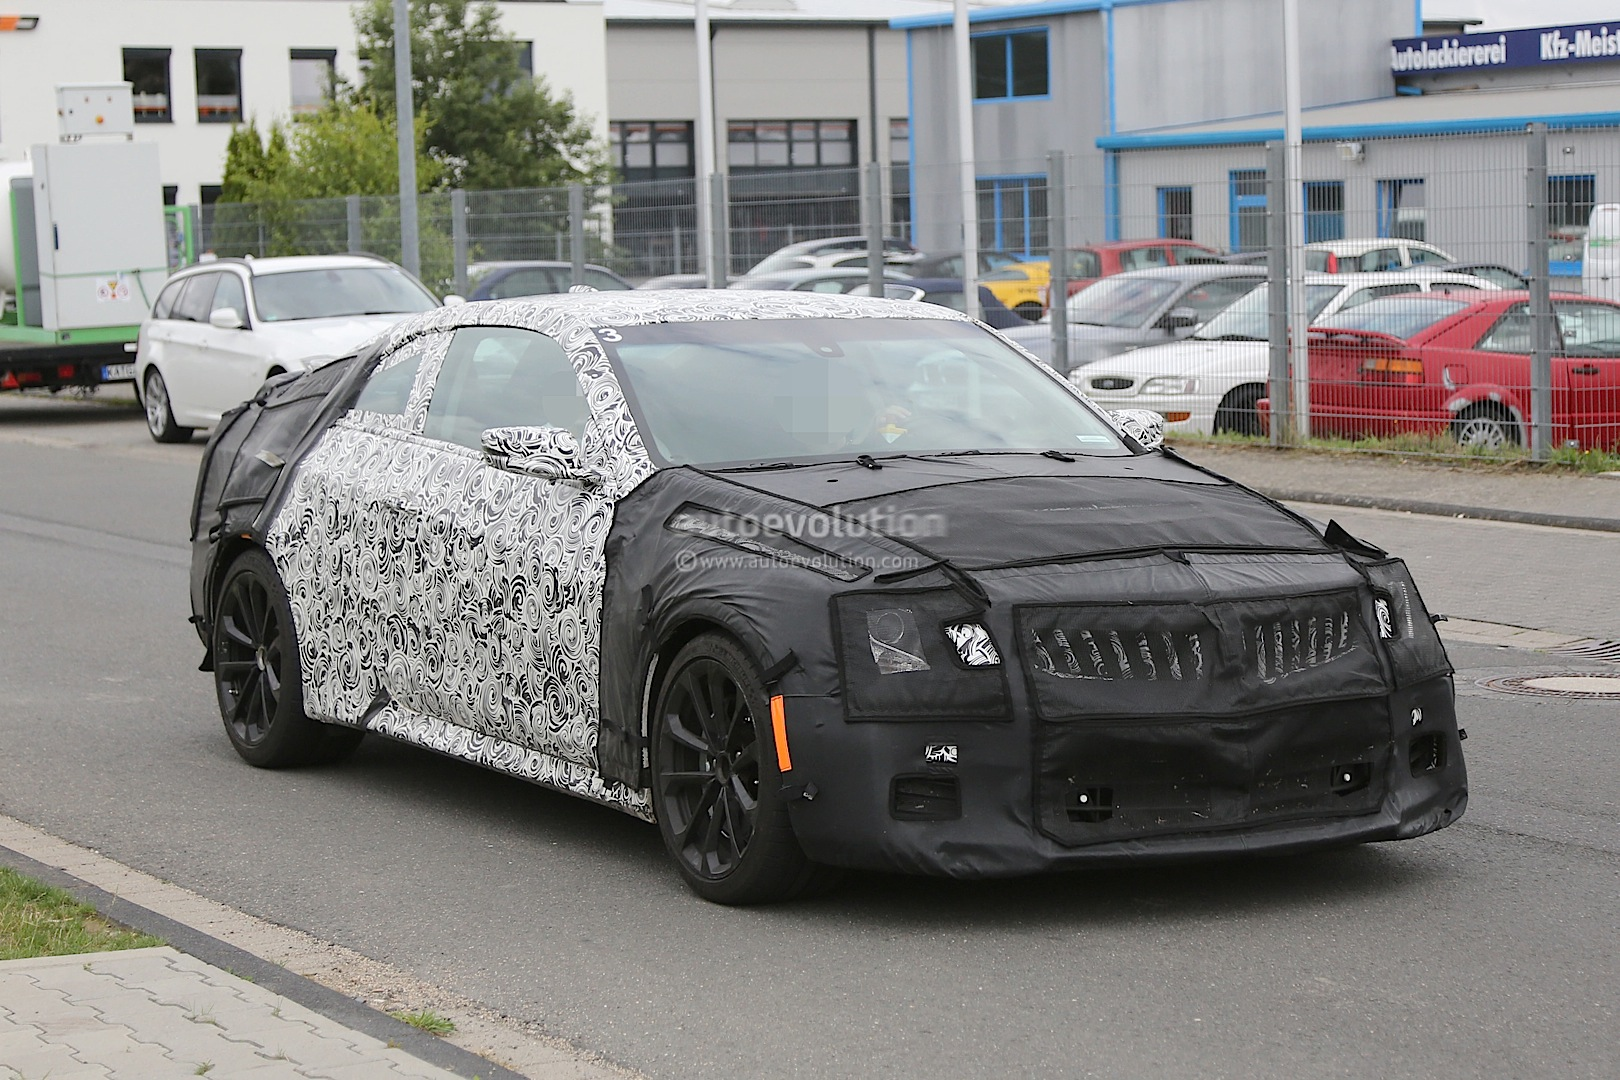 2015 cadillac ats v coupe spied near the nurburgring nordschleife autoevolution. Black Bedroom Furniture Sets. Home Design Ideas